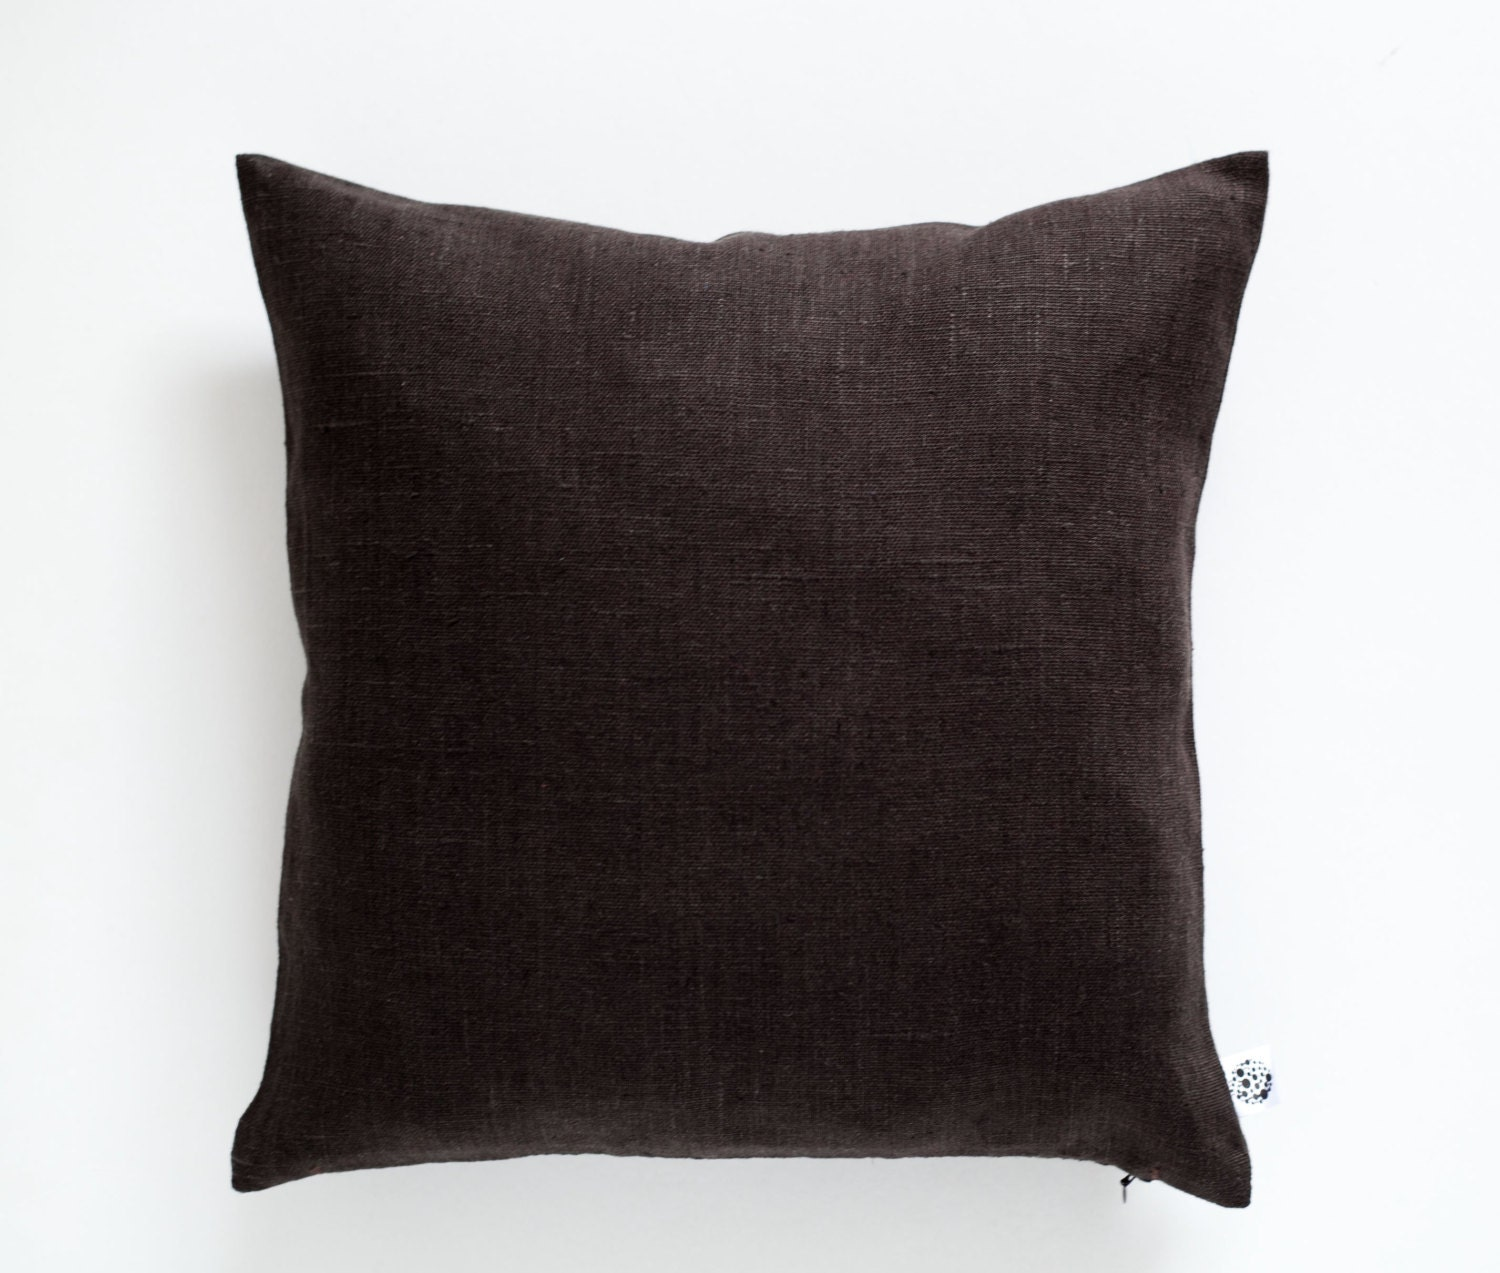 Brown throw pillows Chocolate brown pillow Brown decorative